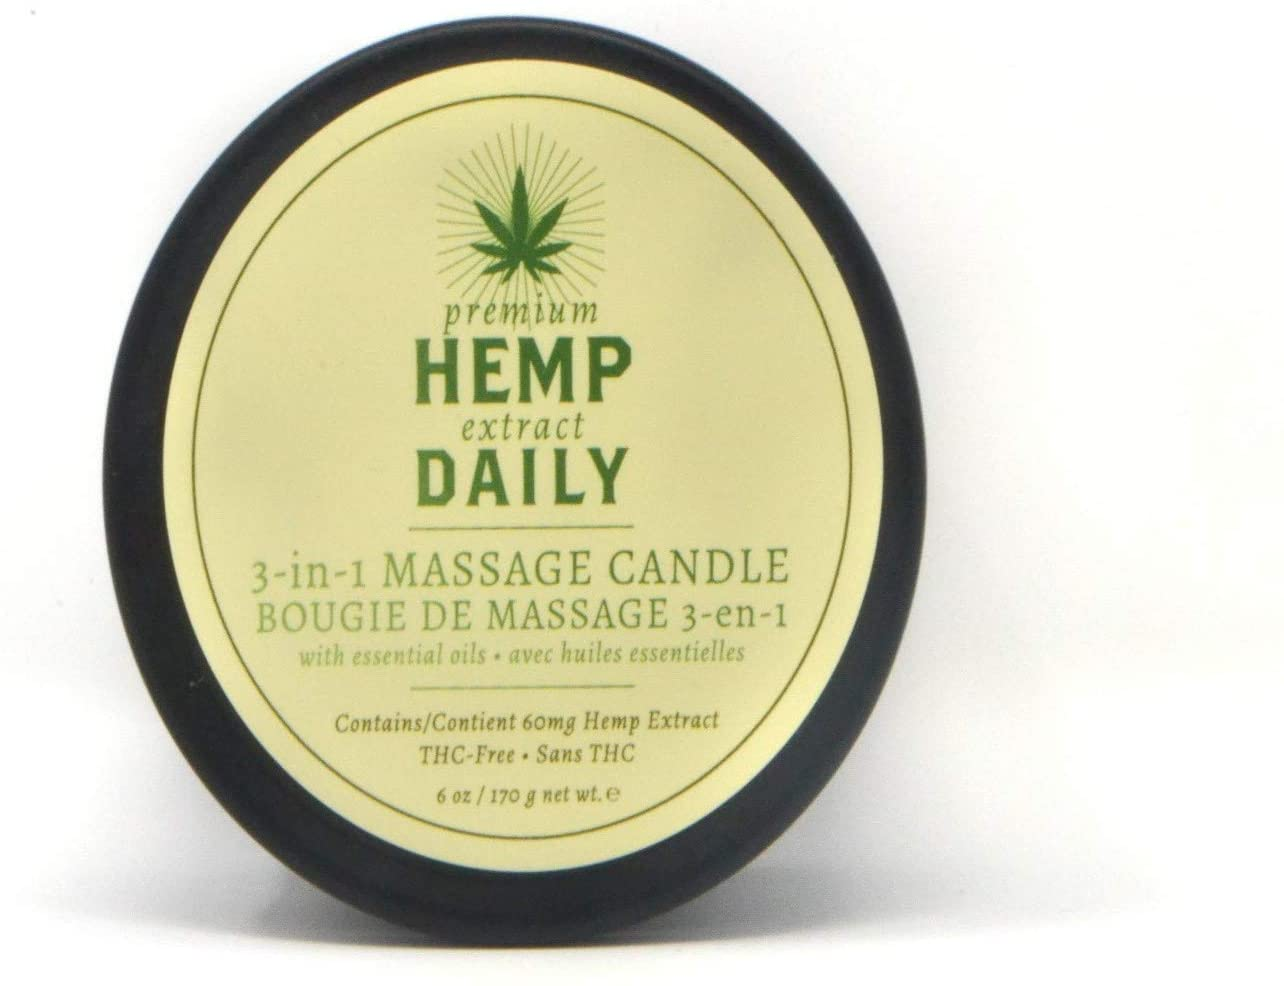 Hemp Daily 3-in-1 Massage Candle | Mint Scented | 6oz